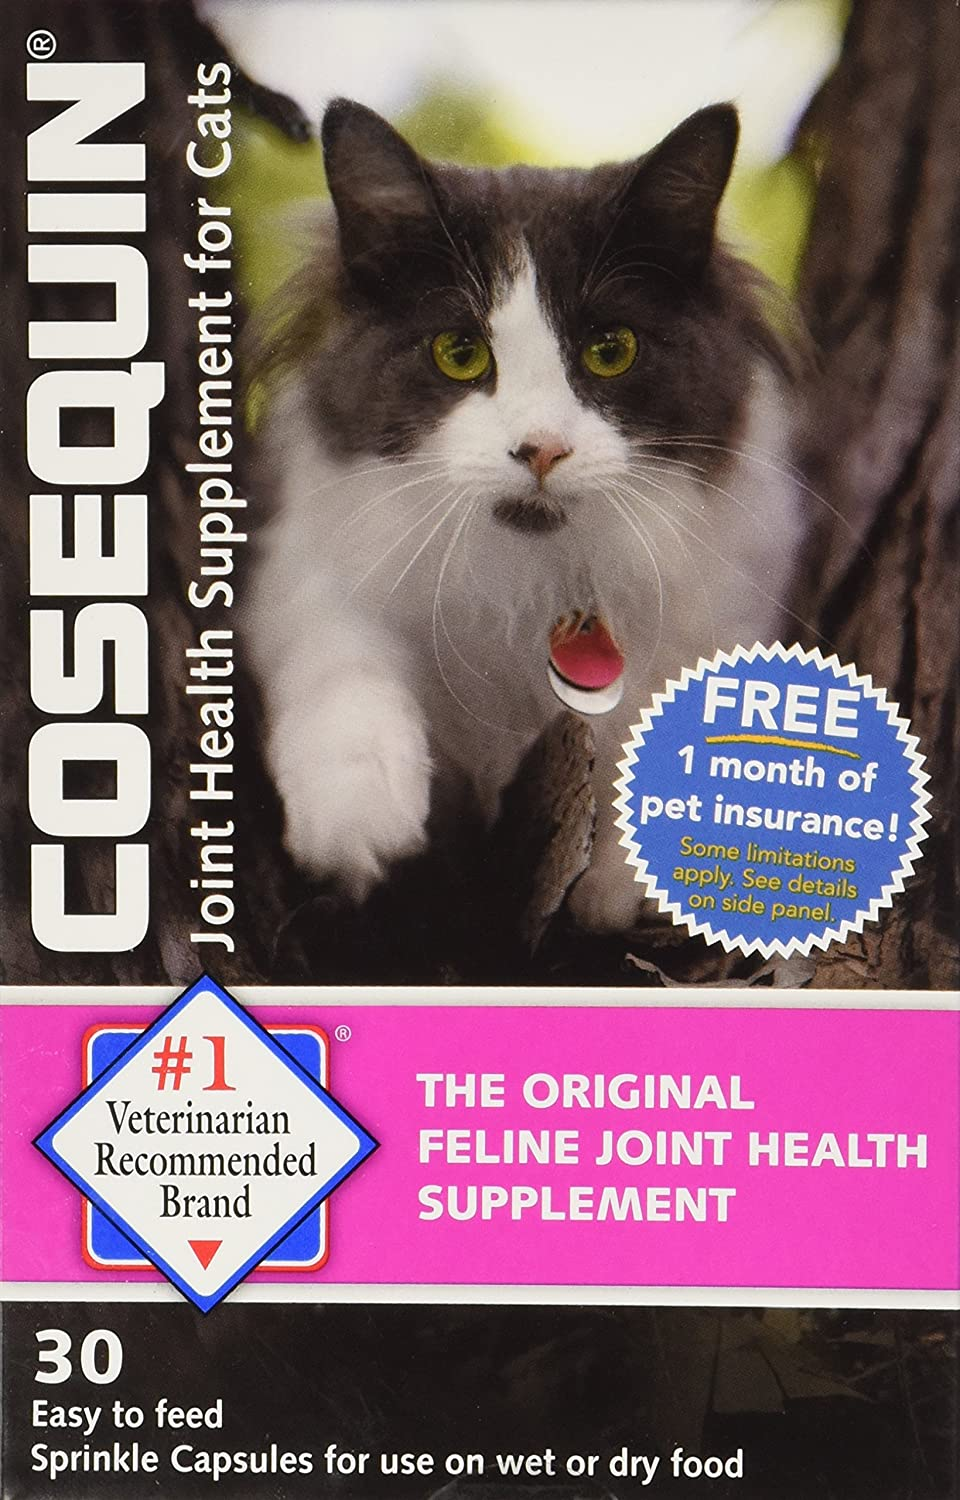 nutramax cosequin sprinkle capsules for cats ebay. Black Bedroom Furniture Sets. Home Design Ideas